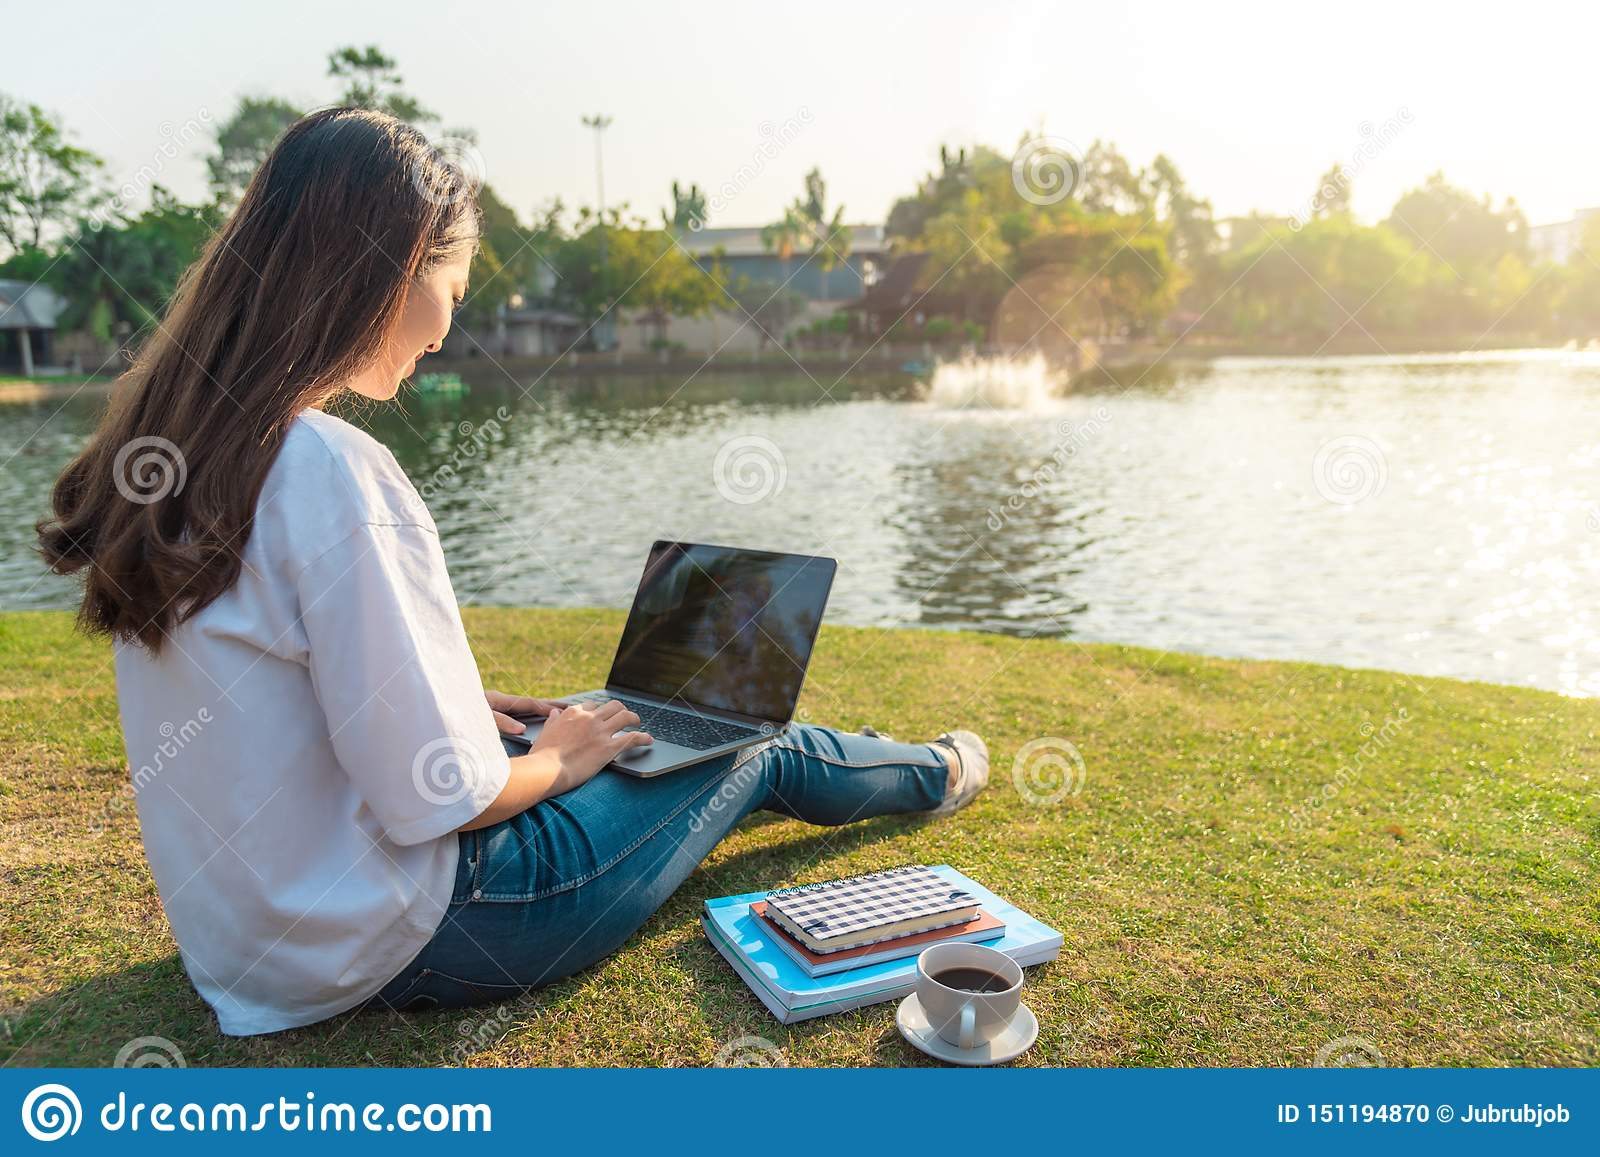 Portrait of beautiful smiling woman sitting on green grass in park with legs crossed during summer day and writing notes with pen